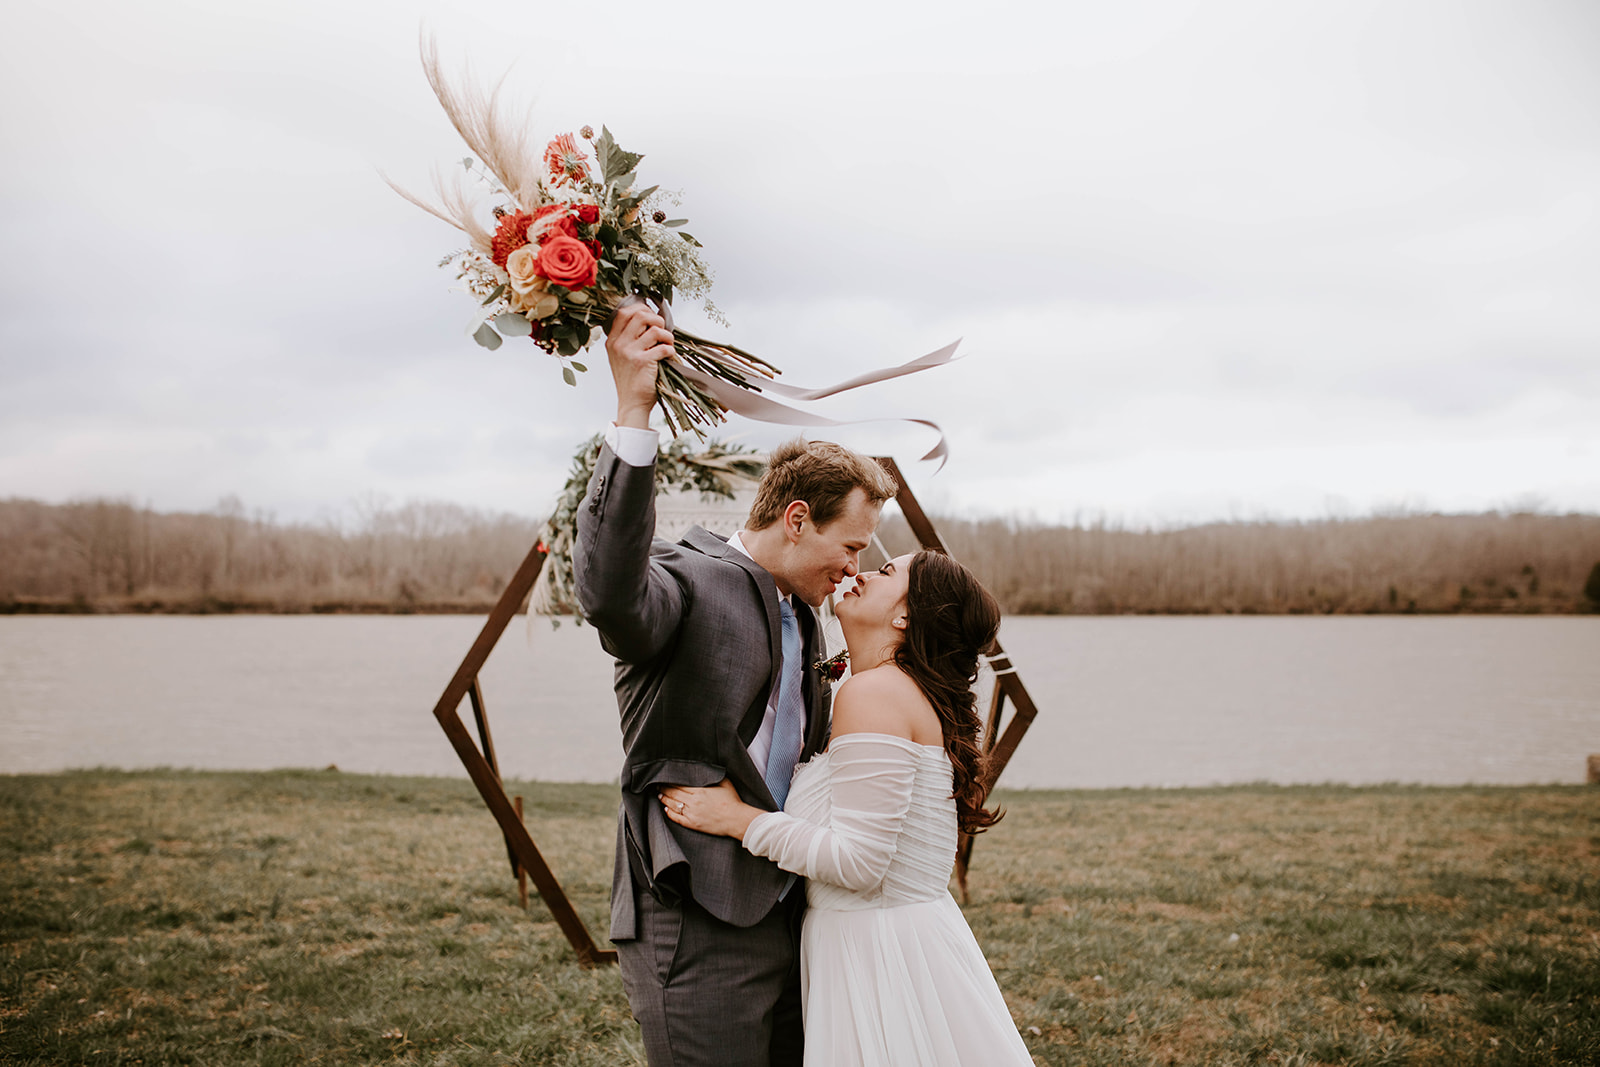 Surprise Vow Renewal by Tara Winstead Photography featured on Nashville Bride Guide